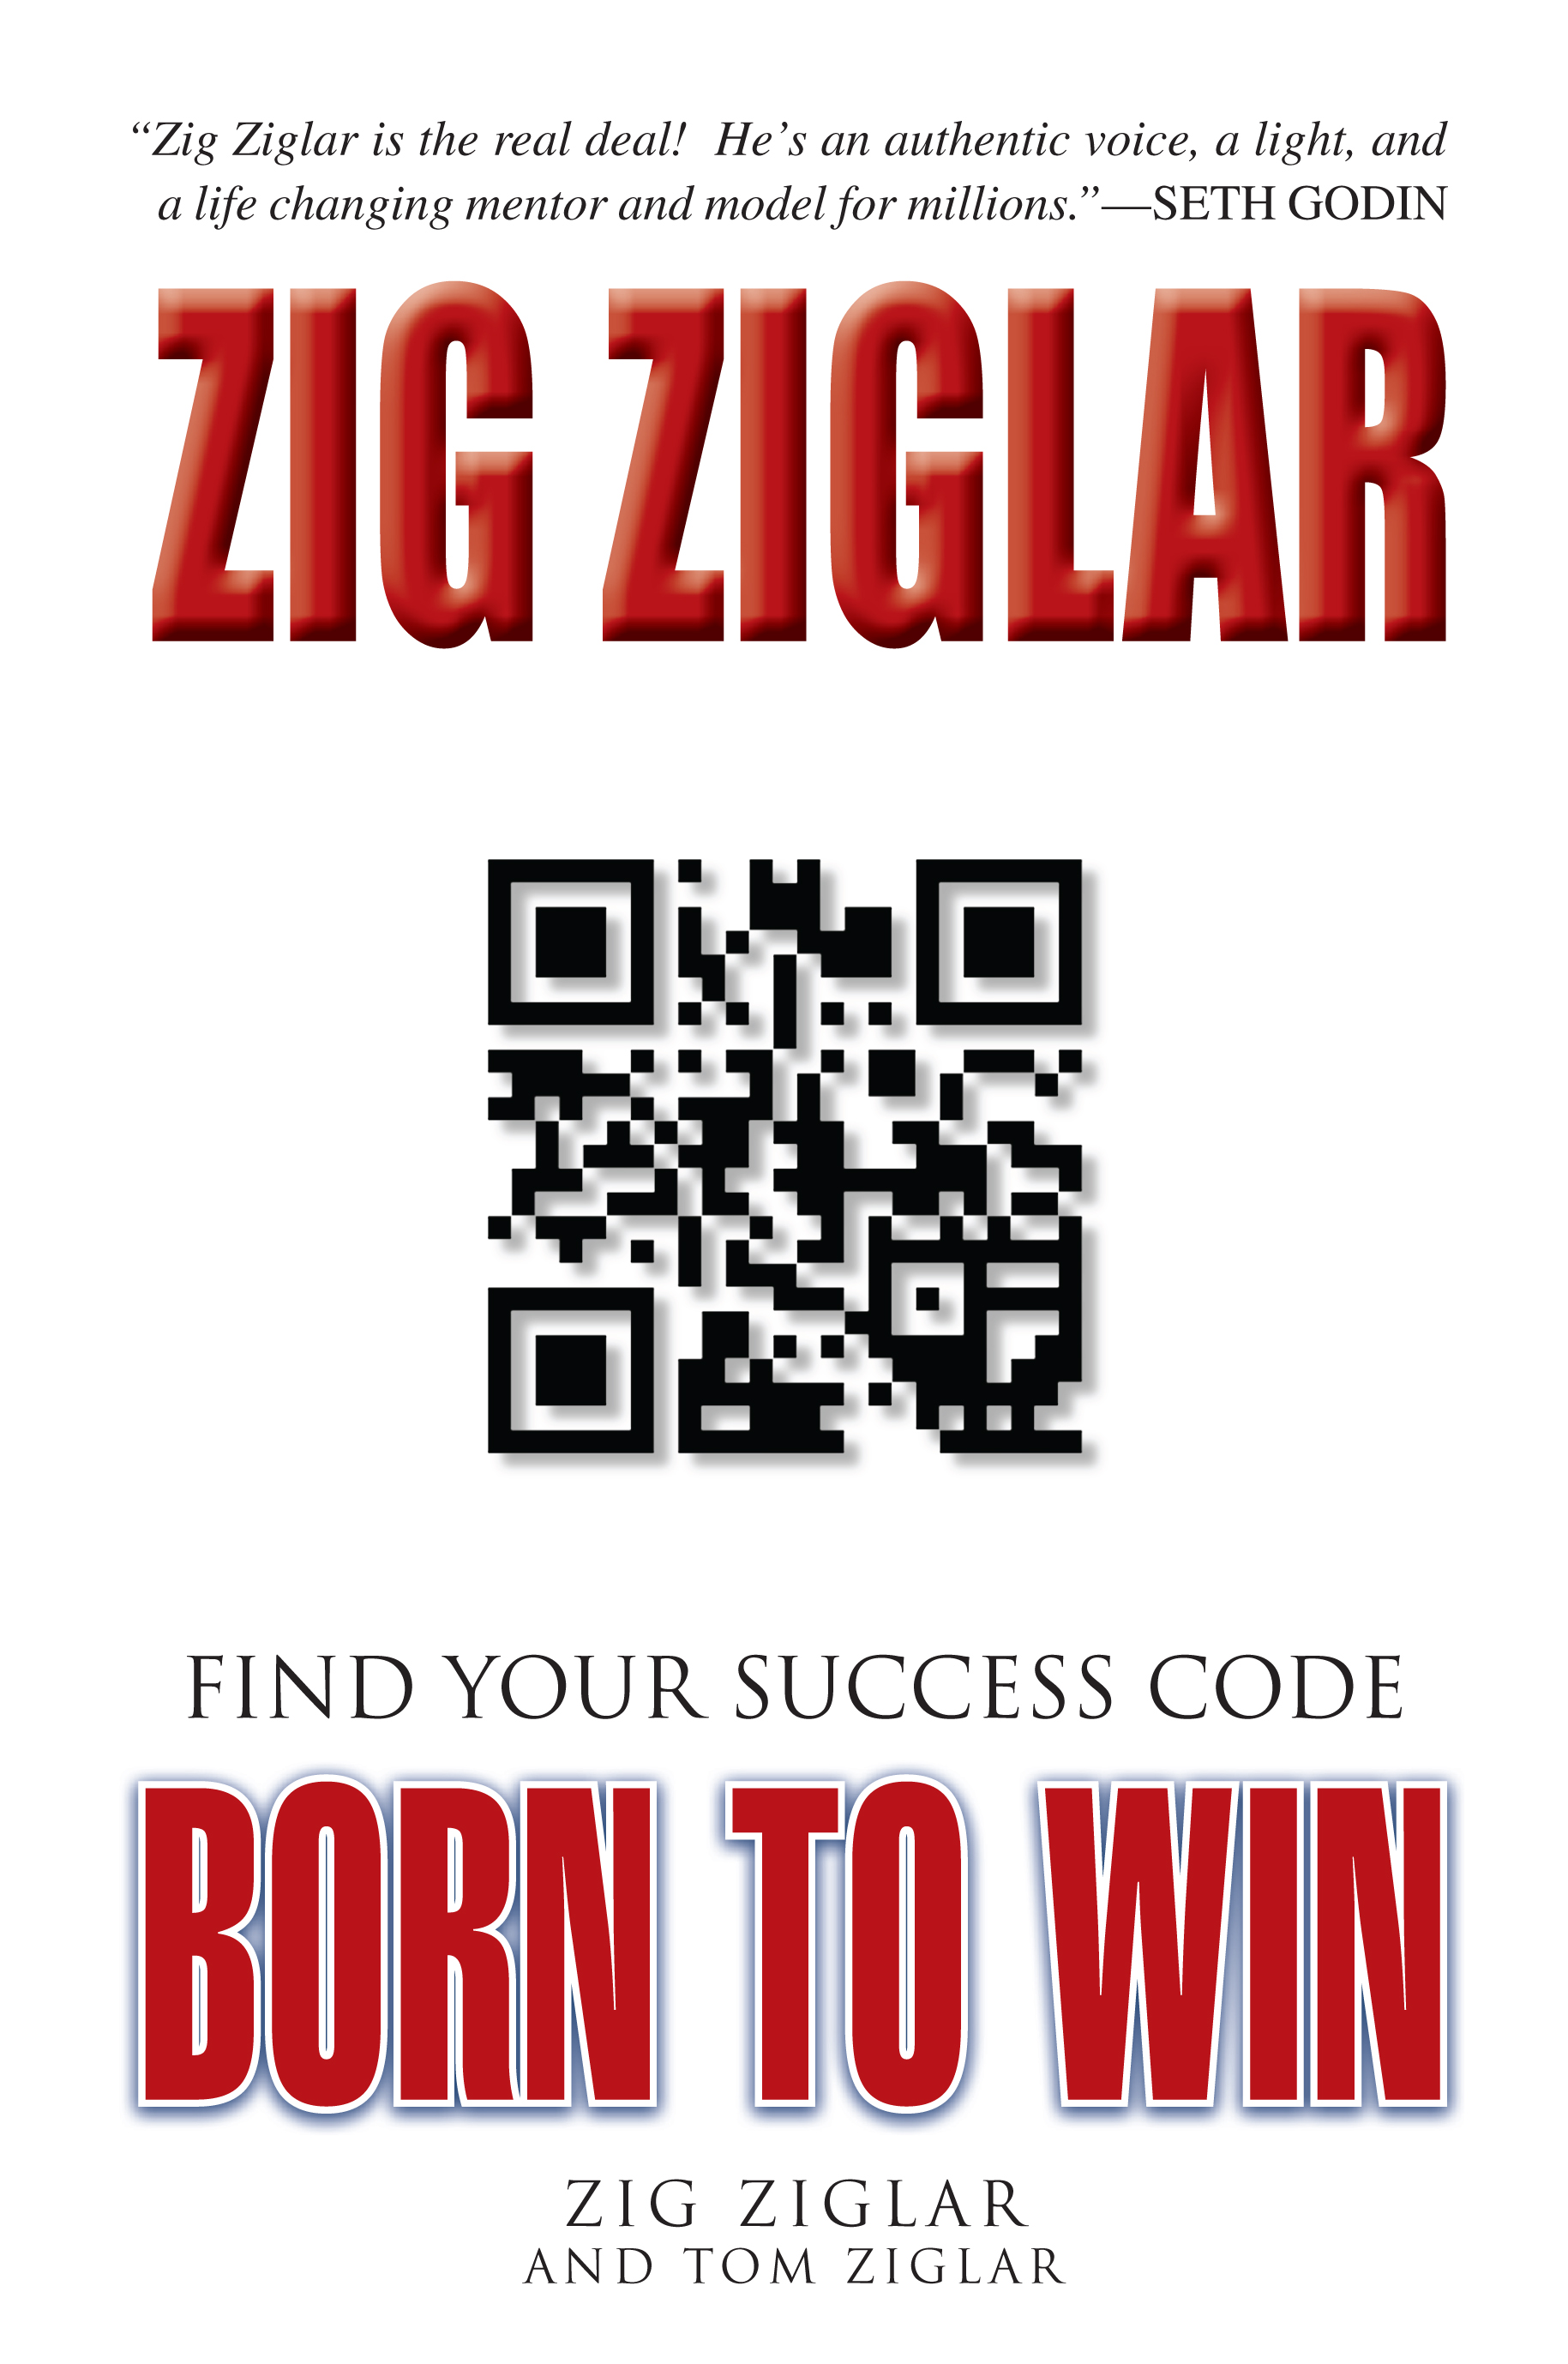 Born to Win with Tom and Zig Ziglar!